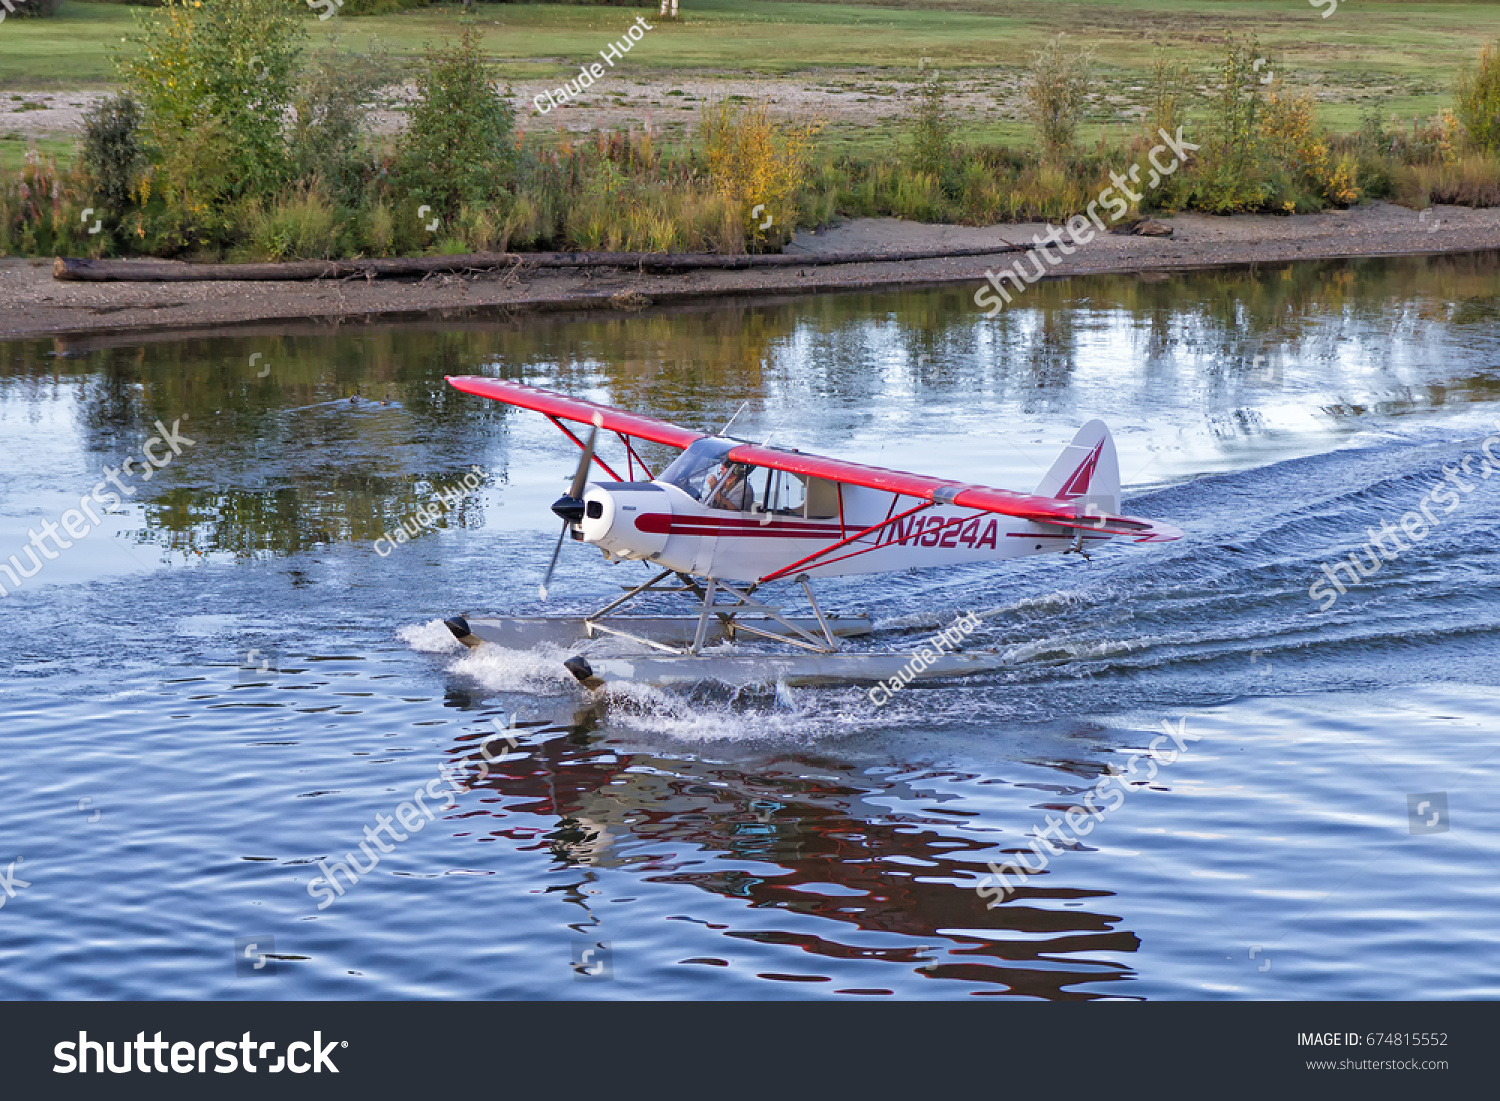 FAIRBANKS, ALASKA, USA - SEPTEMBER 10, 2013: A Piper PA-18-125 lands on the Chena river in Fairbanks, Alaska. Seaplanes are a very popular mode of transportation in the remote Alaskan wilderness.